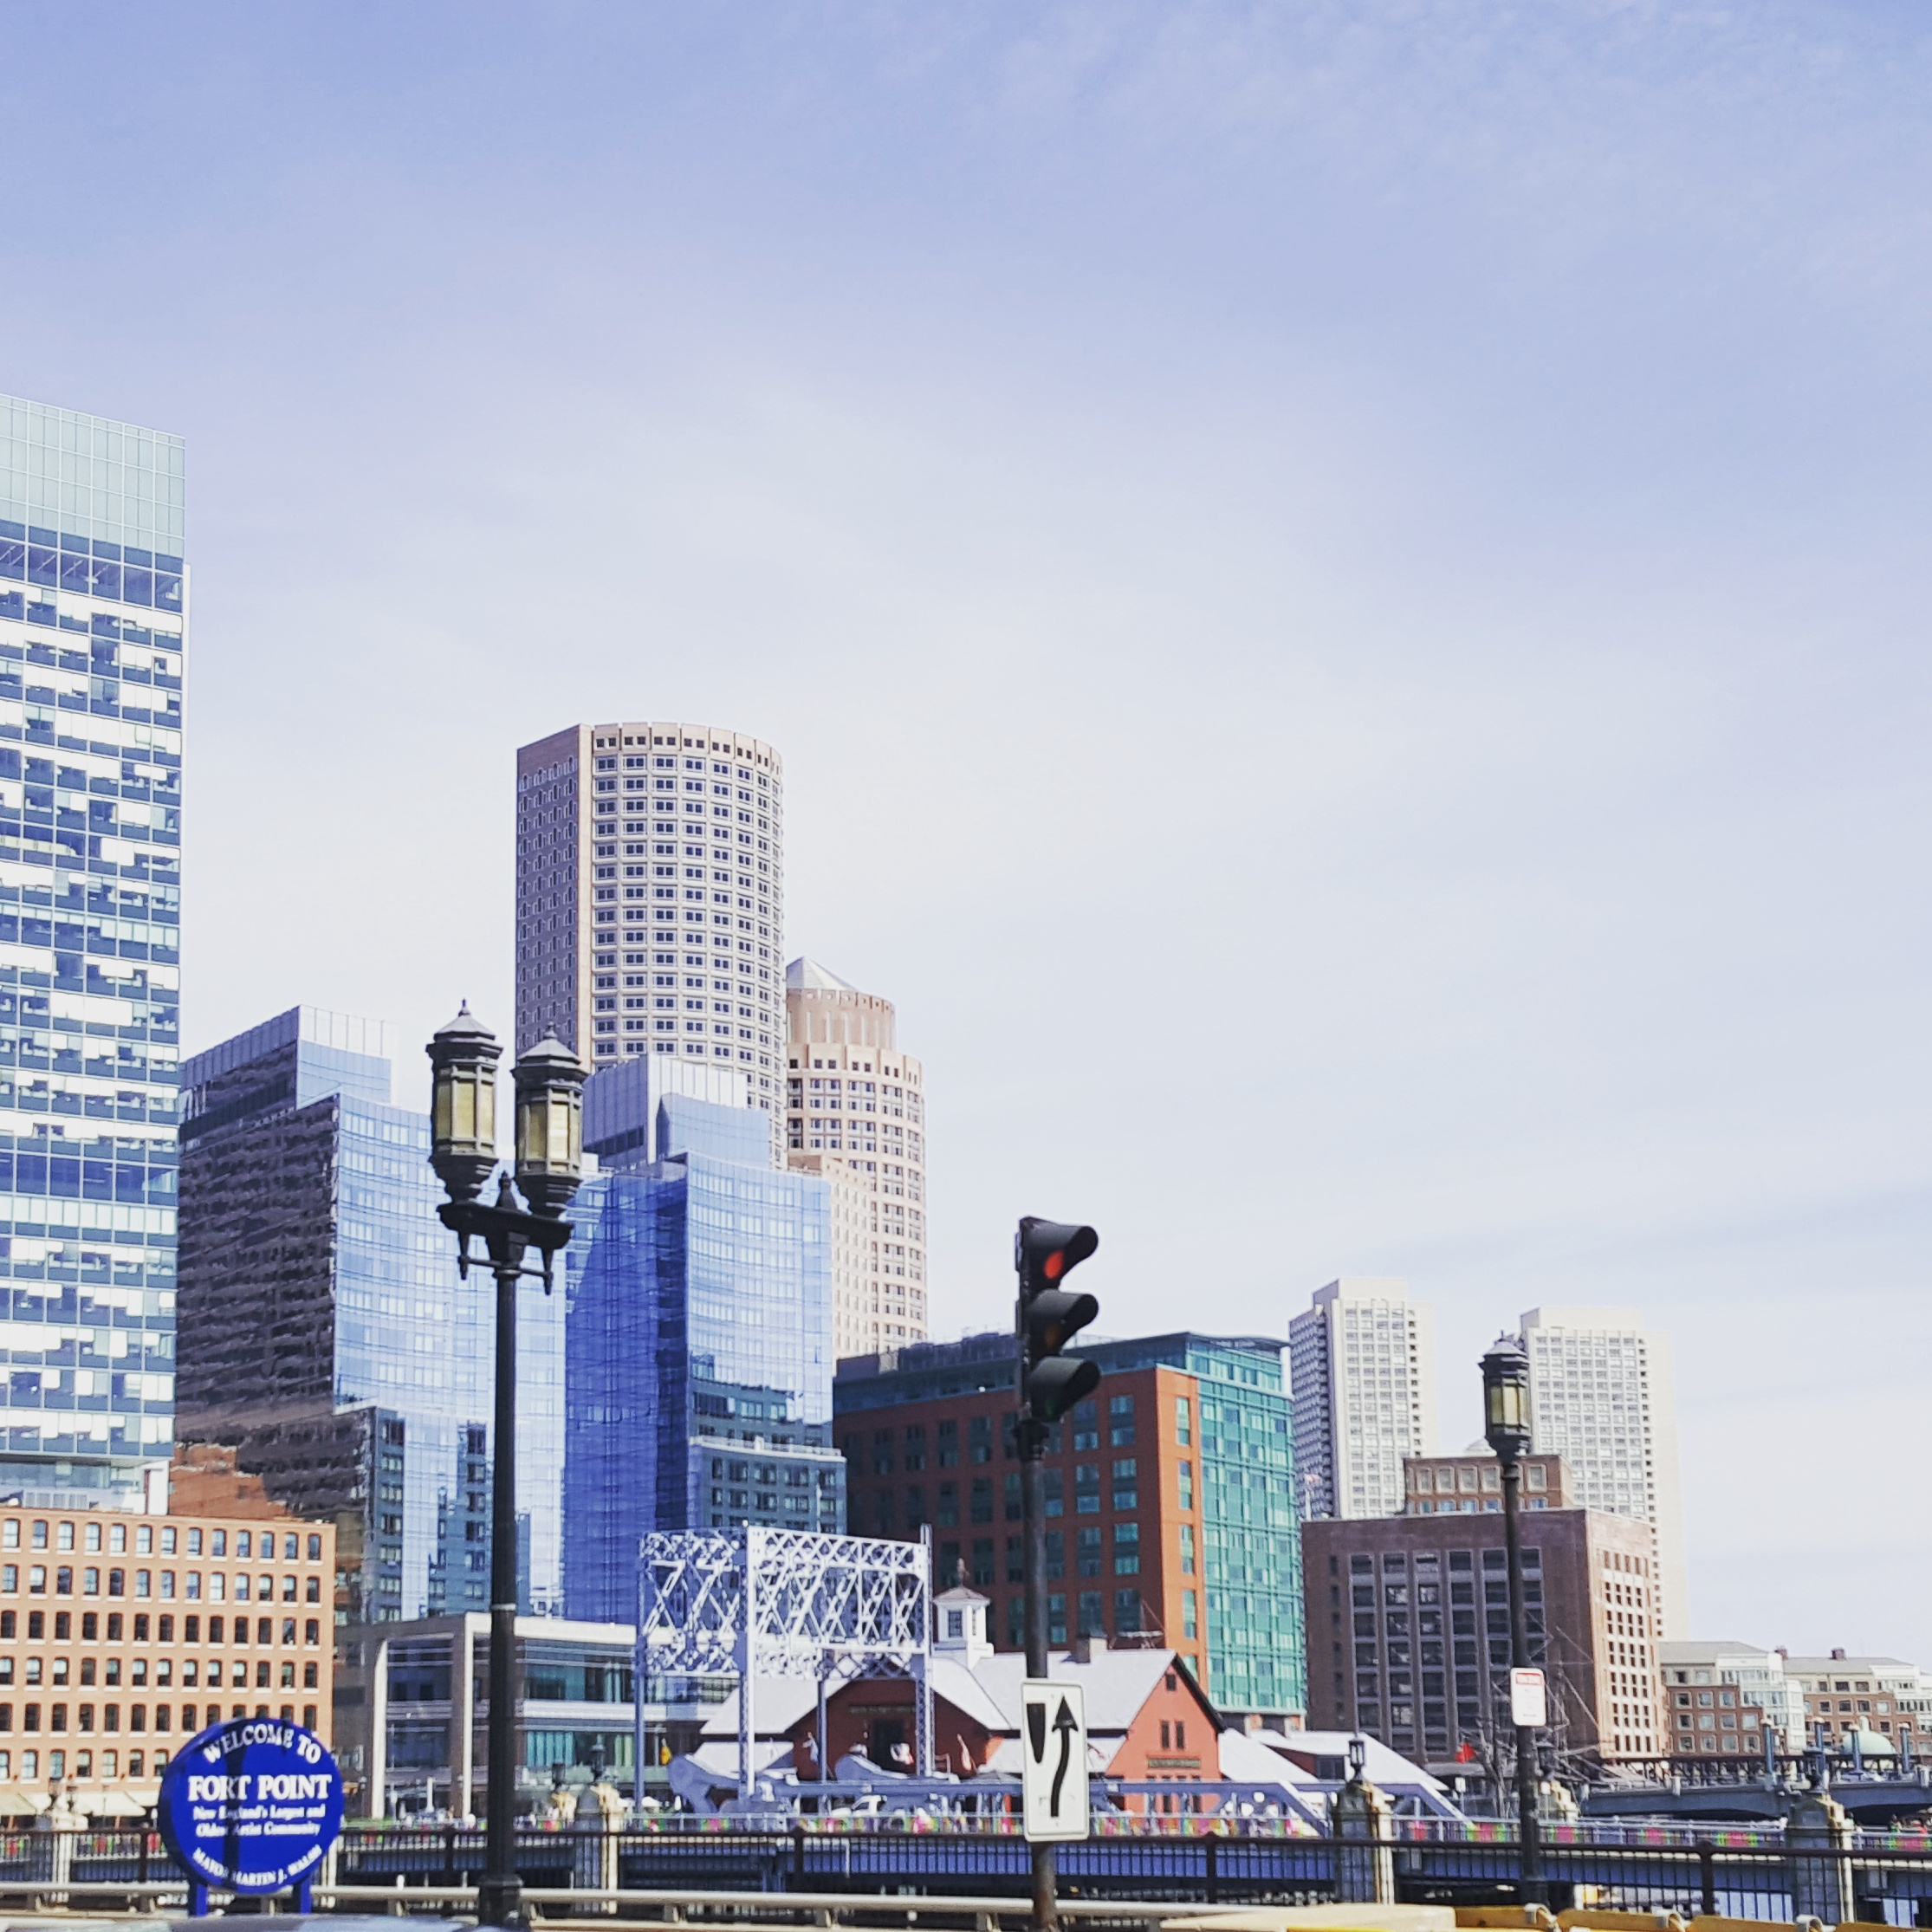 Part of the Boston Skyline from the Fort Point area.